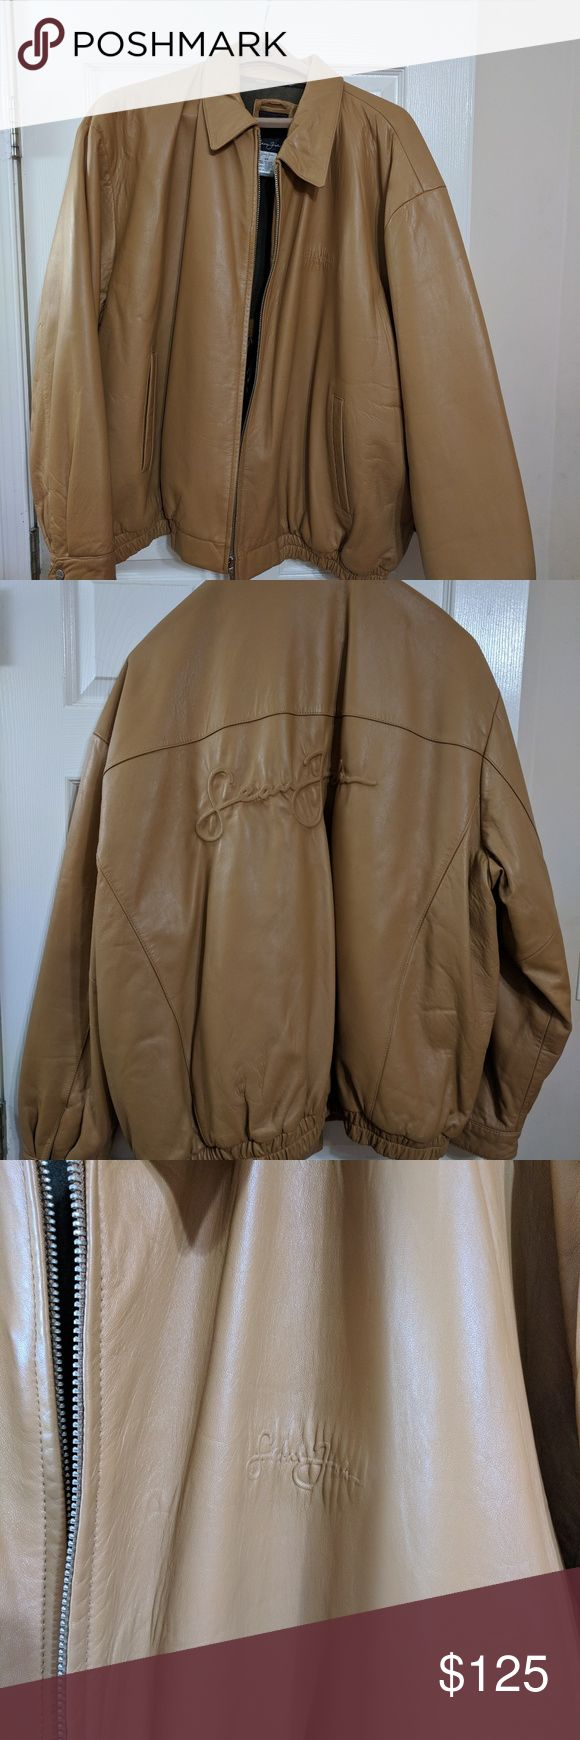 Like new men's Sean Jean leather coat Handsome men's winter coat. Practically brand new. Size 5X but runs smaller. Logo on front and back. No rips, non smoking household. Sean John Jackets & Coats Puffers